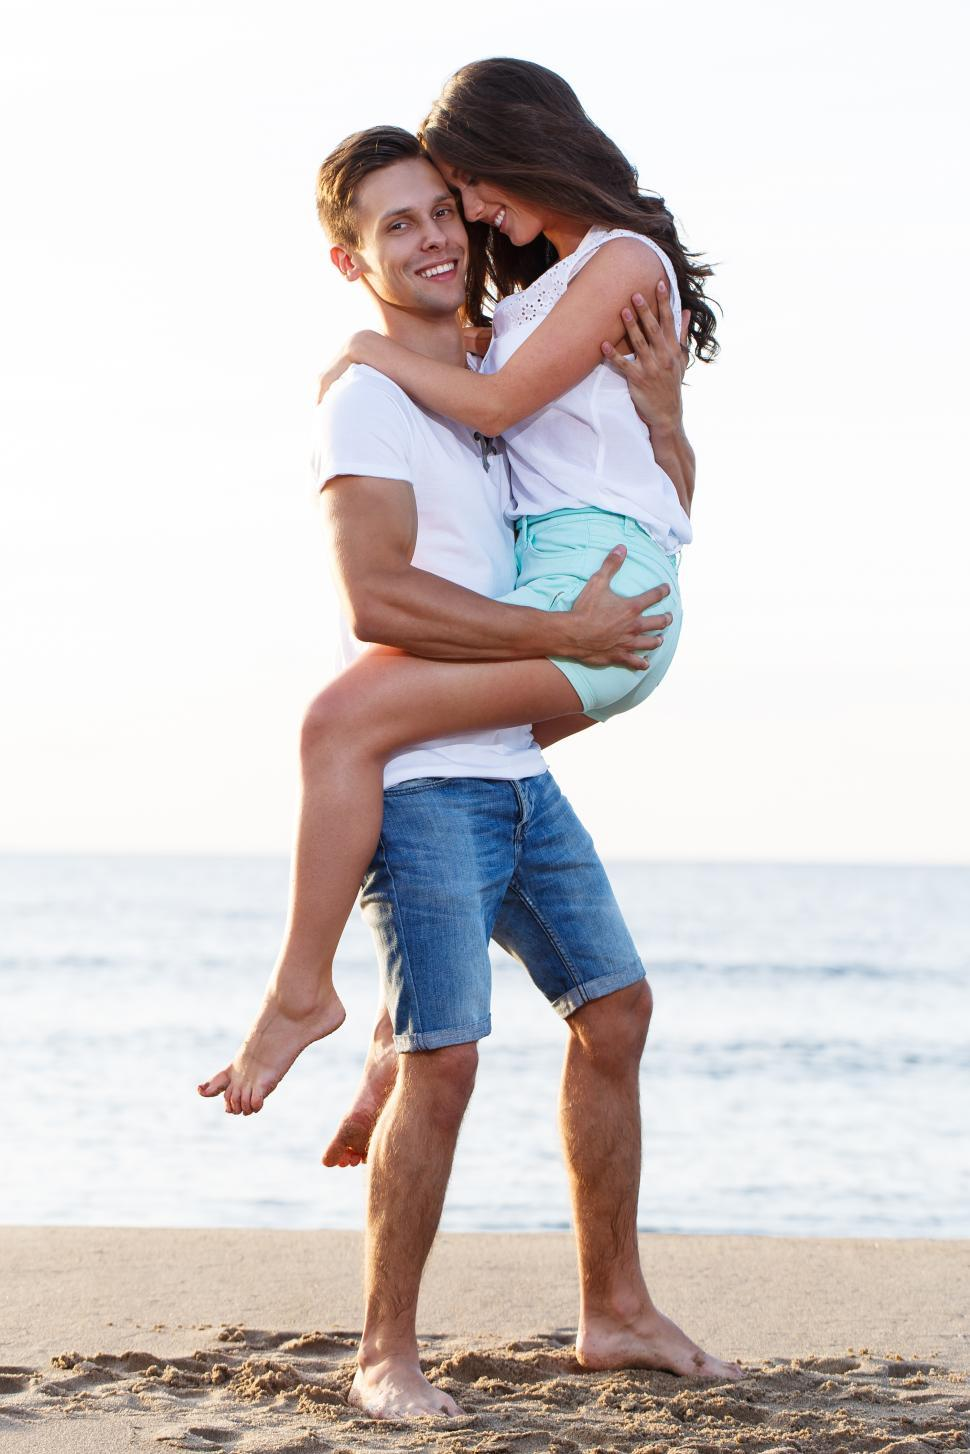 Download Free Stock HD Photo of Beautiful couple on the beach Online